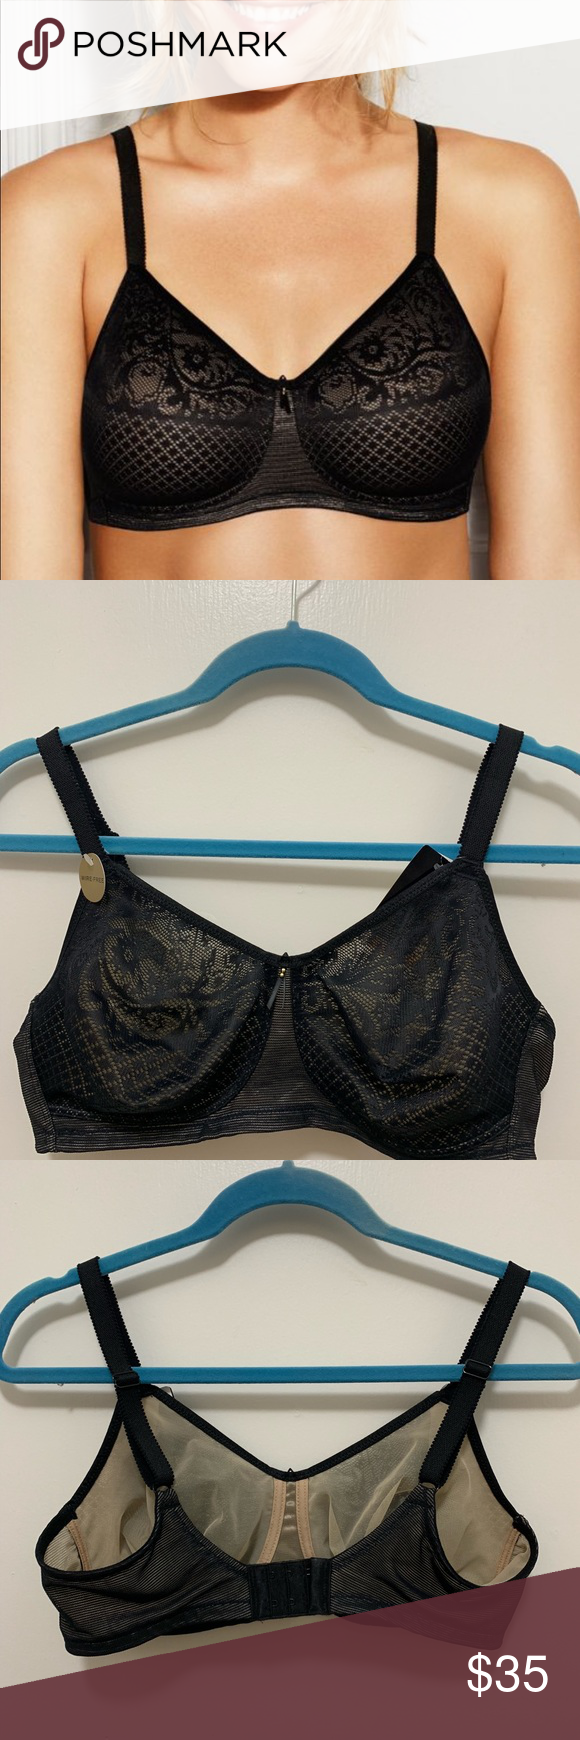 101e55282d7 Wacoal Visual Effects Wire Free Minimizer Bra Wacoal Visual Effects Wire  Free Minimizer Style 852210 Full Coverage Adjustable straps Color: Black  Wacoal ...